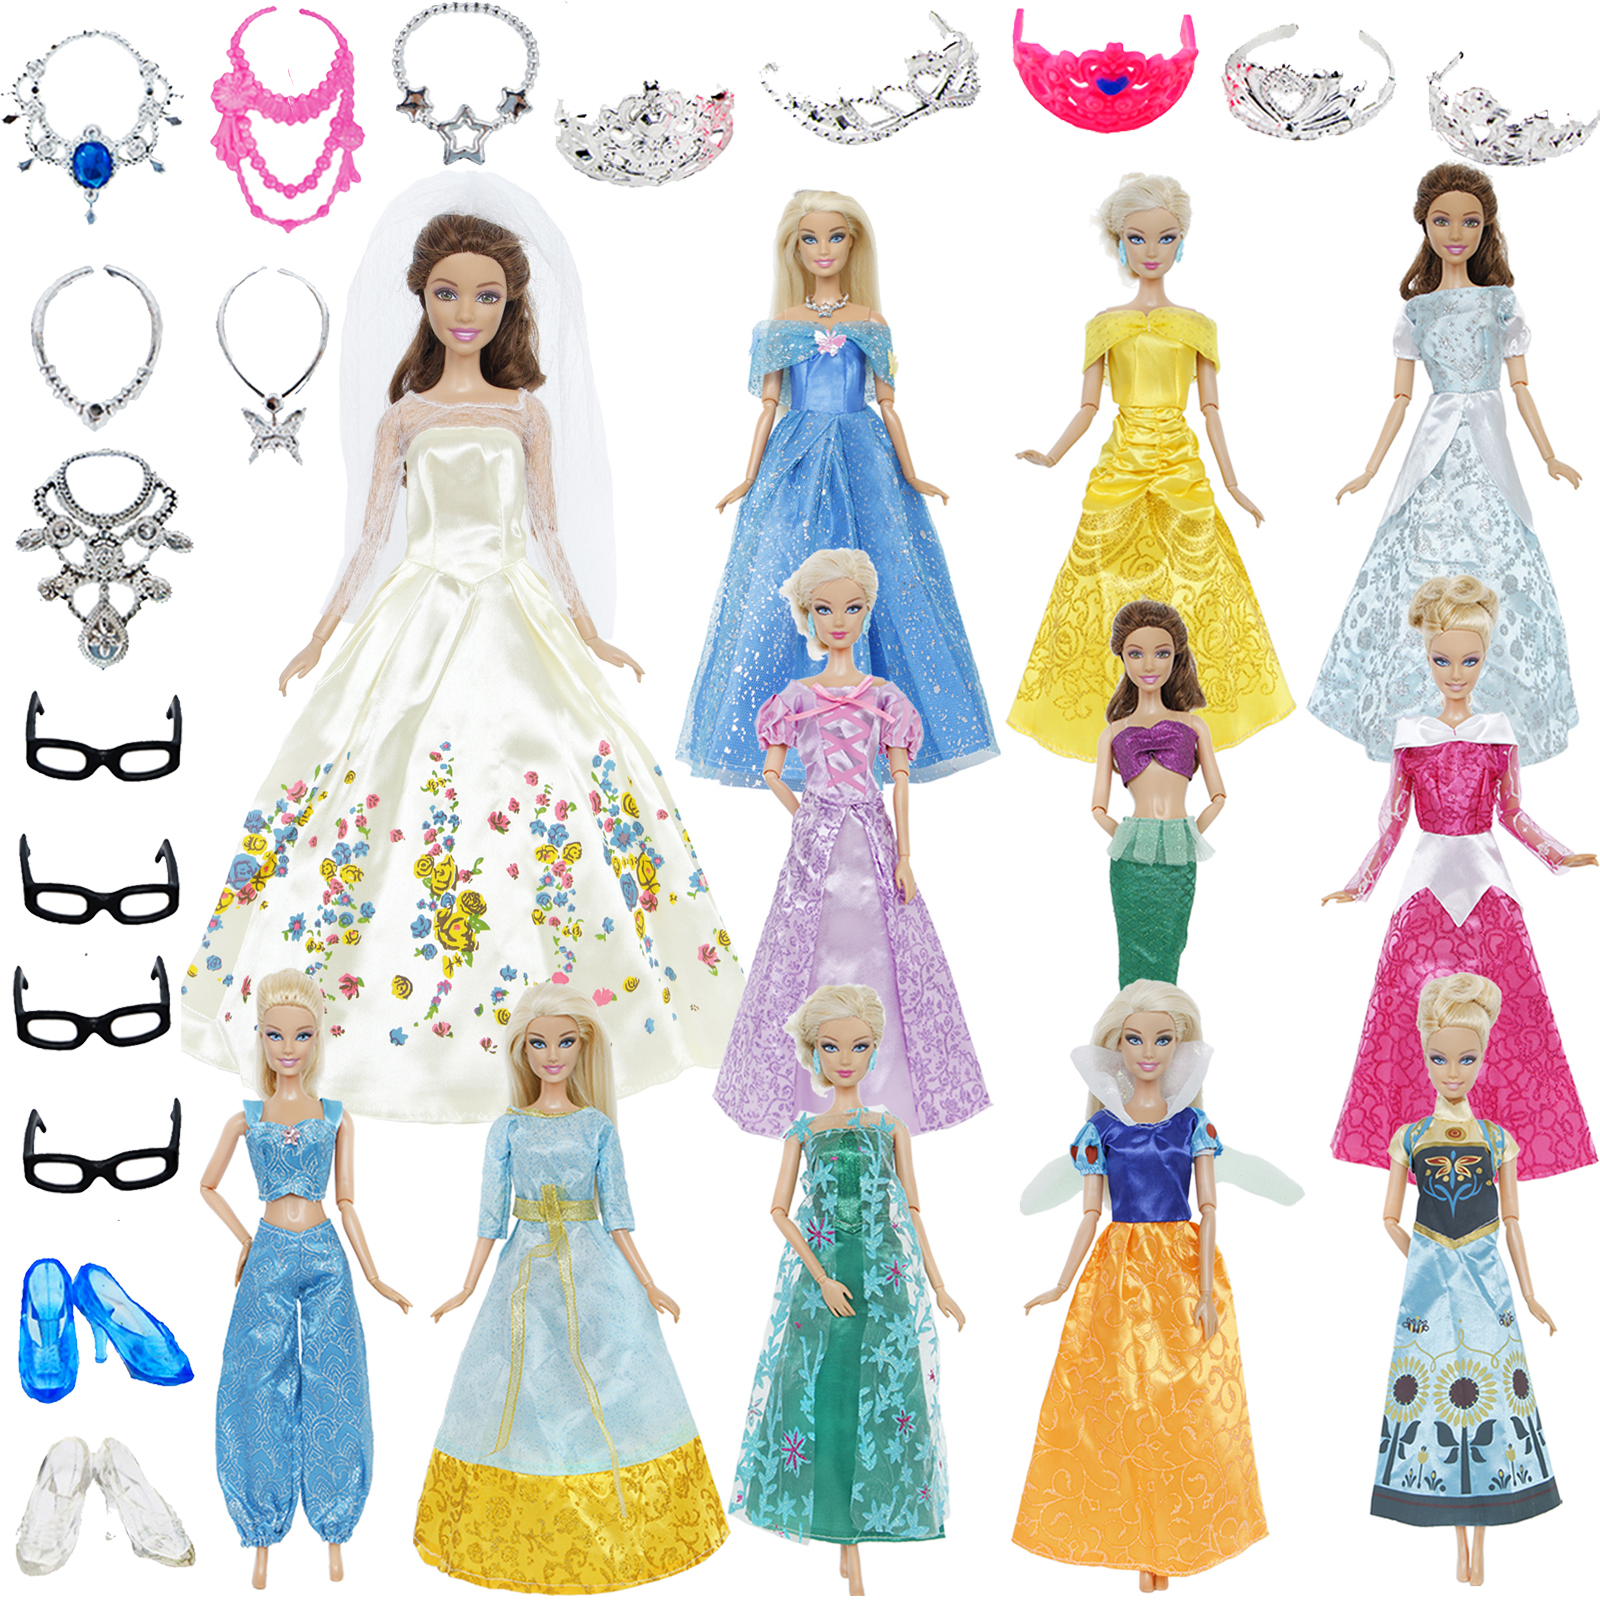 2x Dresses / Plastic Jewelry Toy Fairy Tale Ball Gown Cartoon Princess Accessories For Barbie Doll Clothes For Frozen For Belle